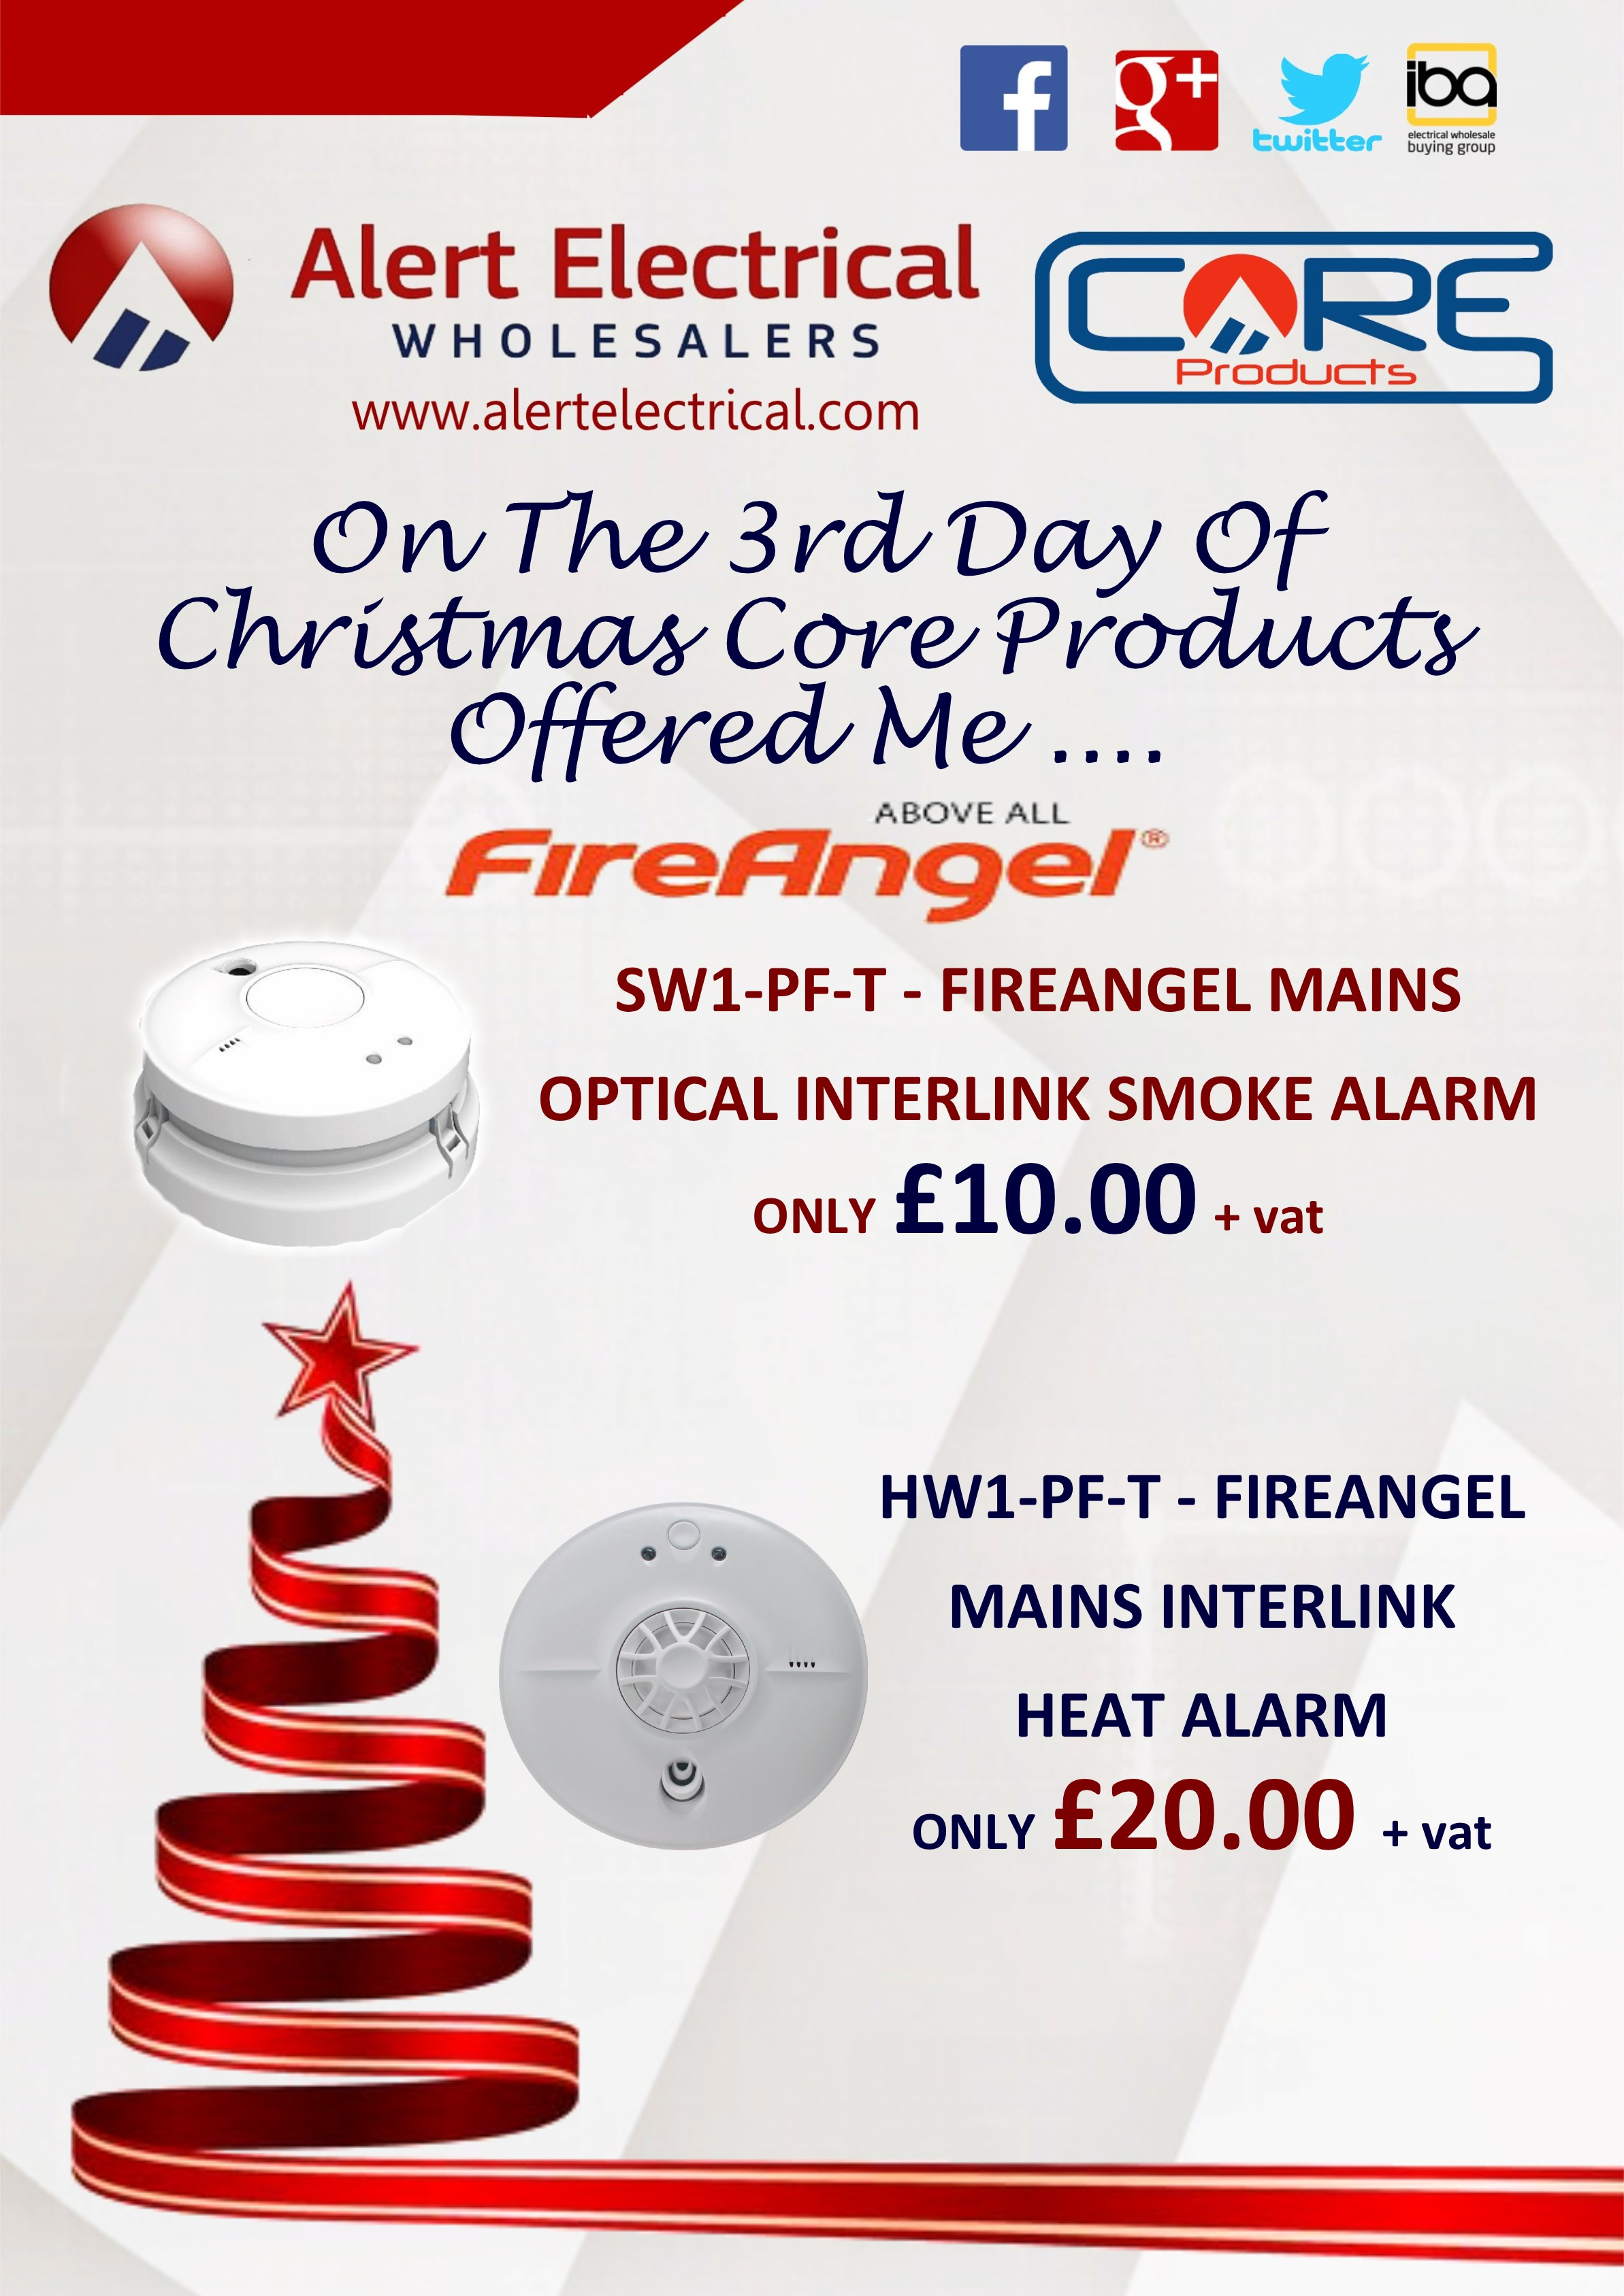 Alert Electrical Wholesalers 12 Days of Christmas. Day 3 FireAngel Mains Smoke & Heat Alarms